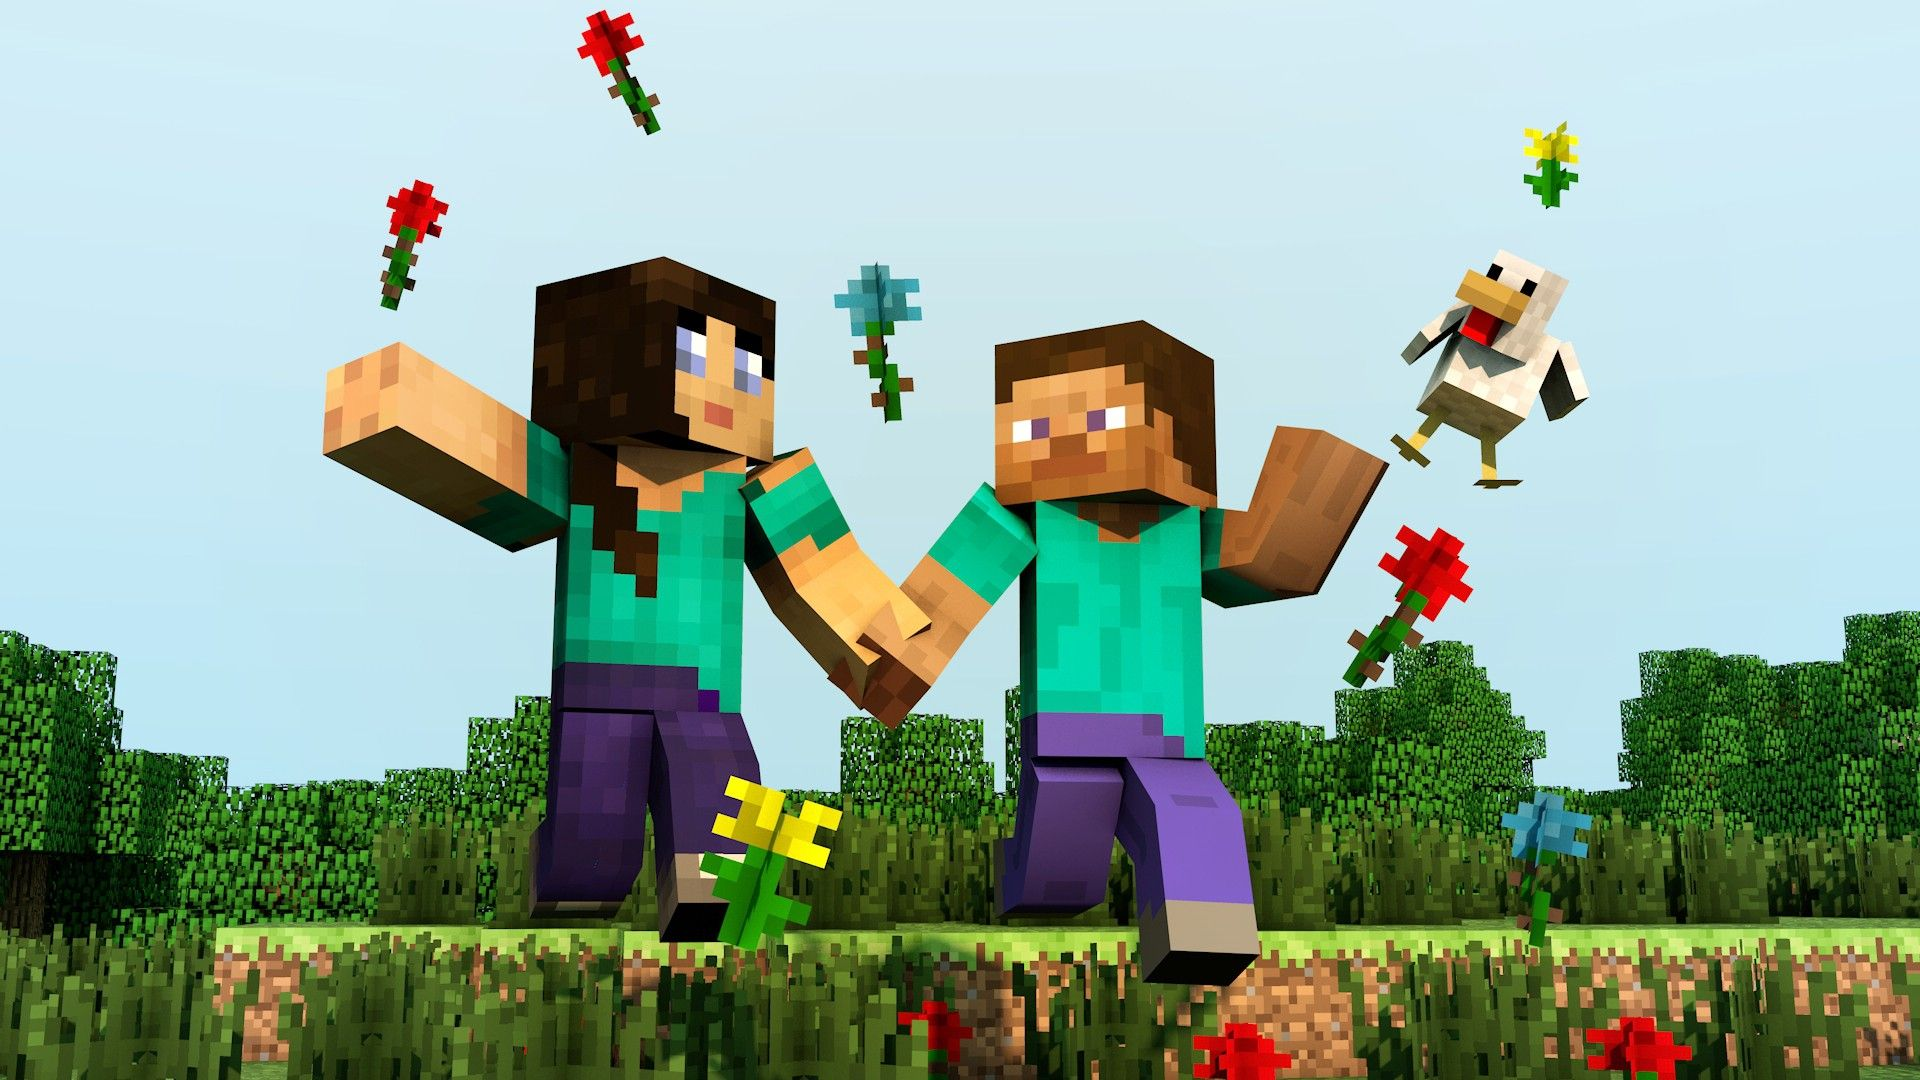 Minecraft Wallpaper Minecraft Steve Wallpaper 1920x1080 Minecraft Steve Stevette Girl Minecraft Games Minecraft How To Play Minecraft